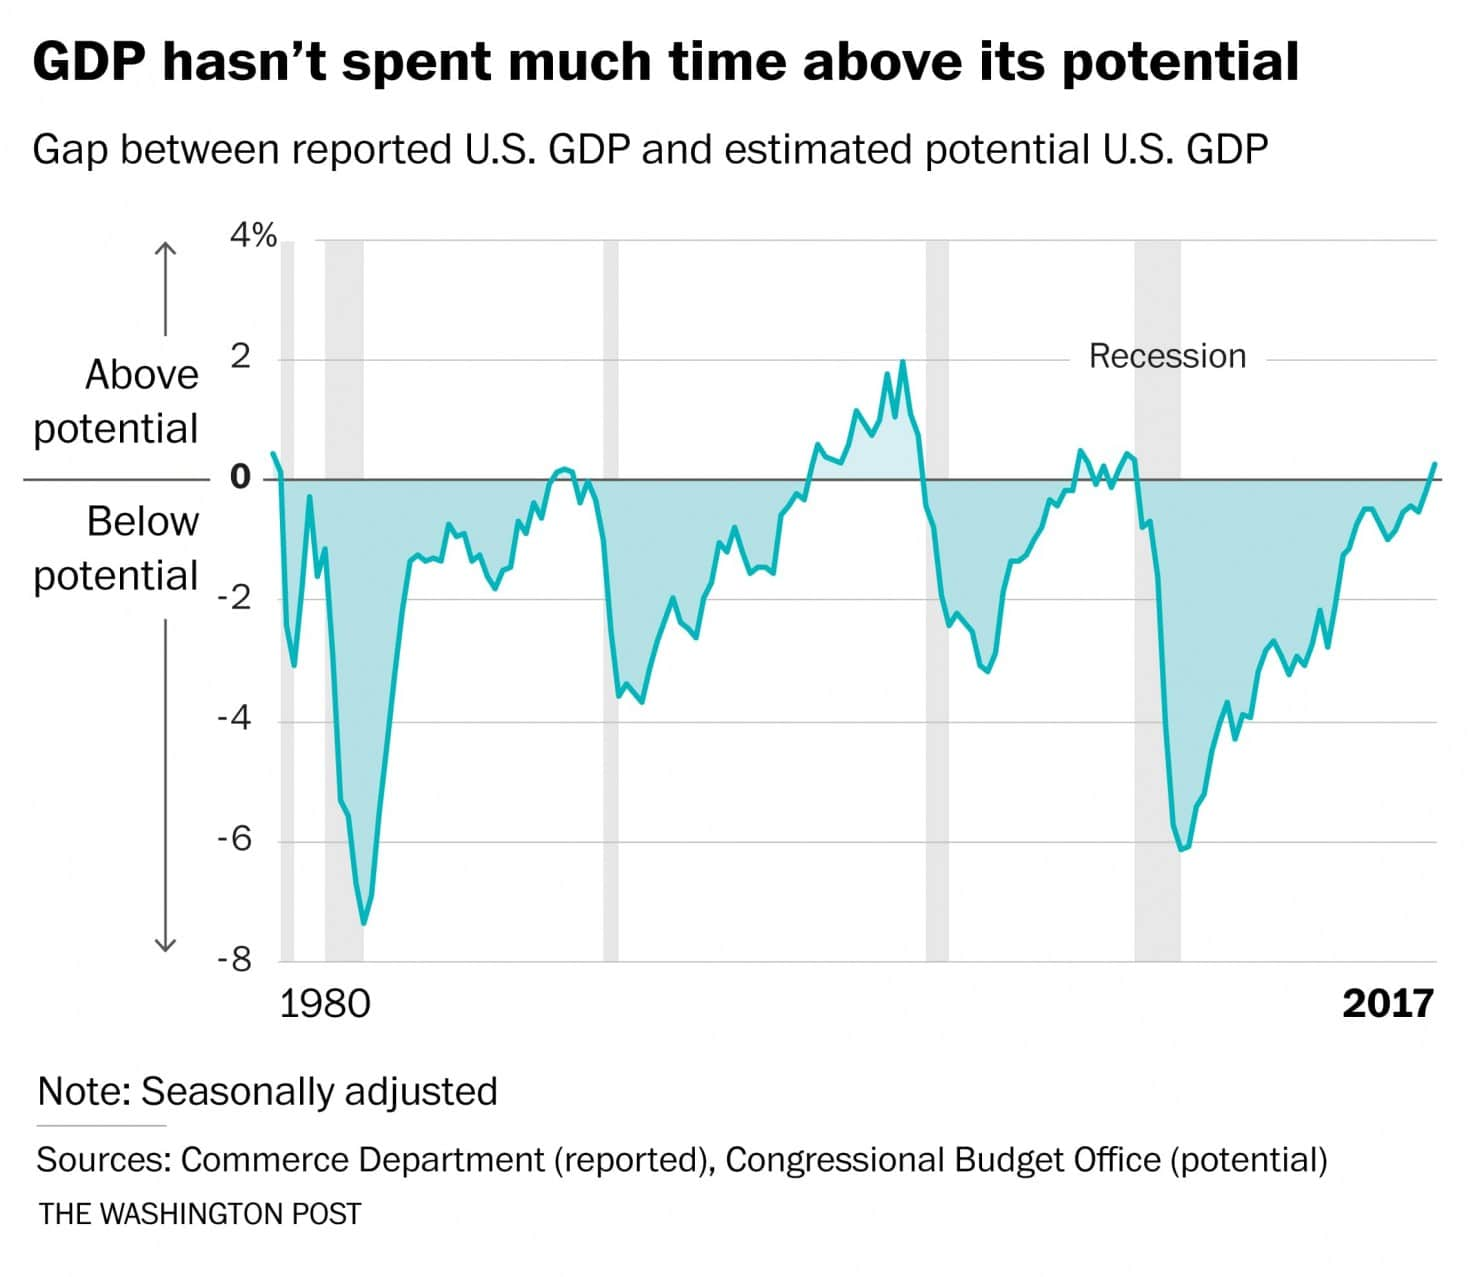 WaPo Potential GDP Growth